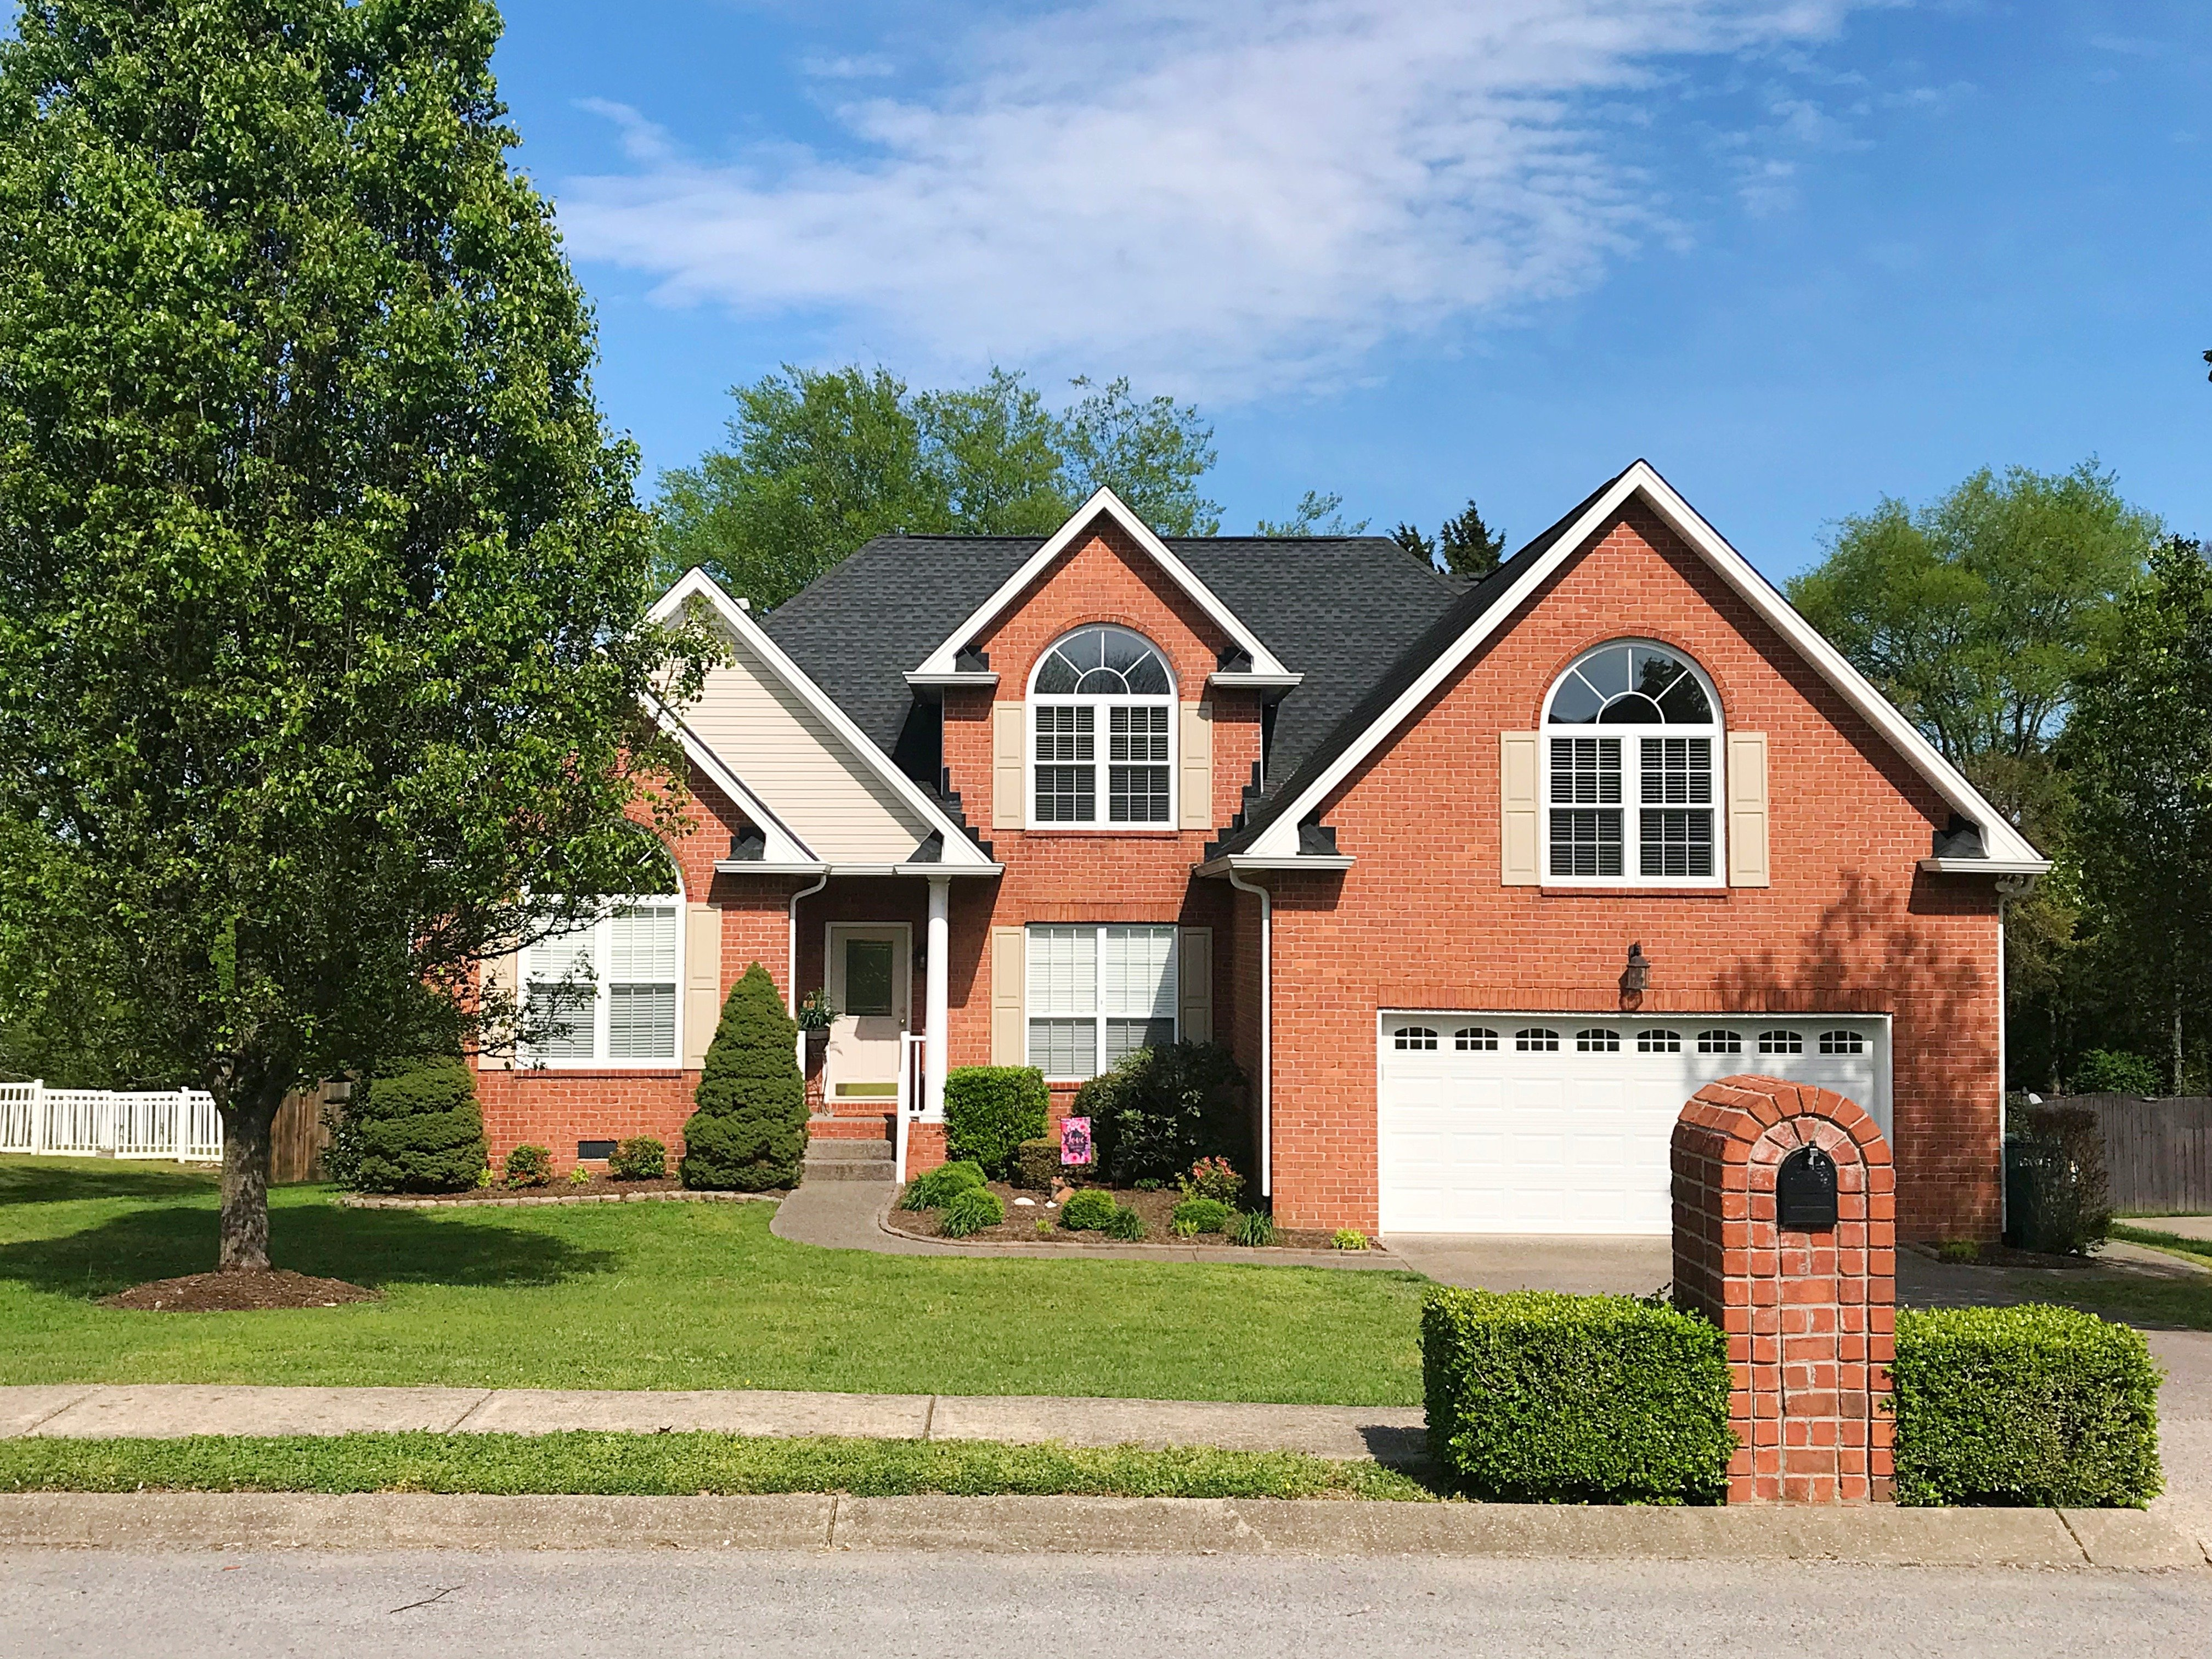 Home for sale in Lebanon, TN